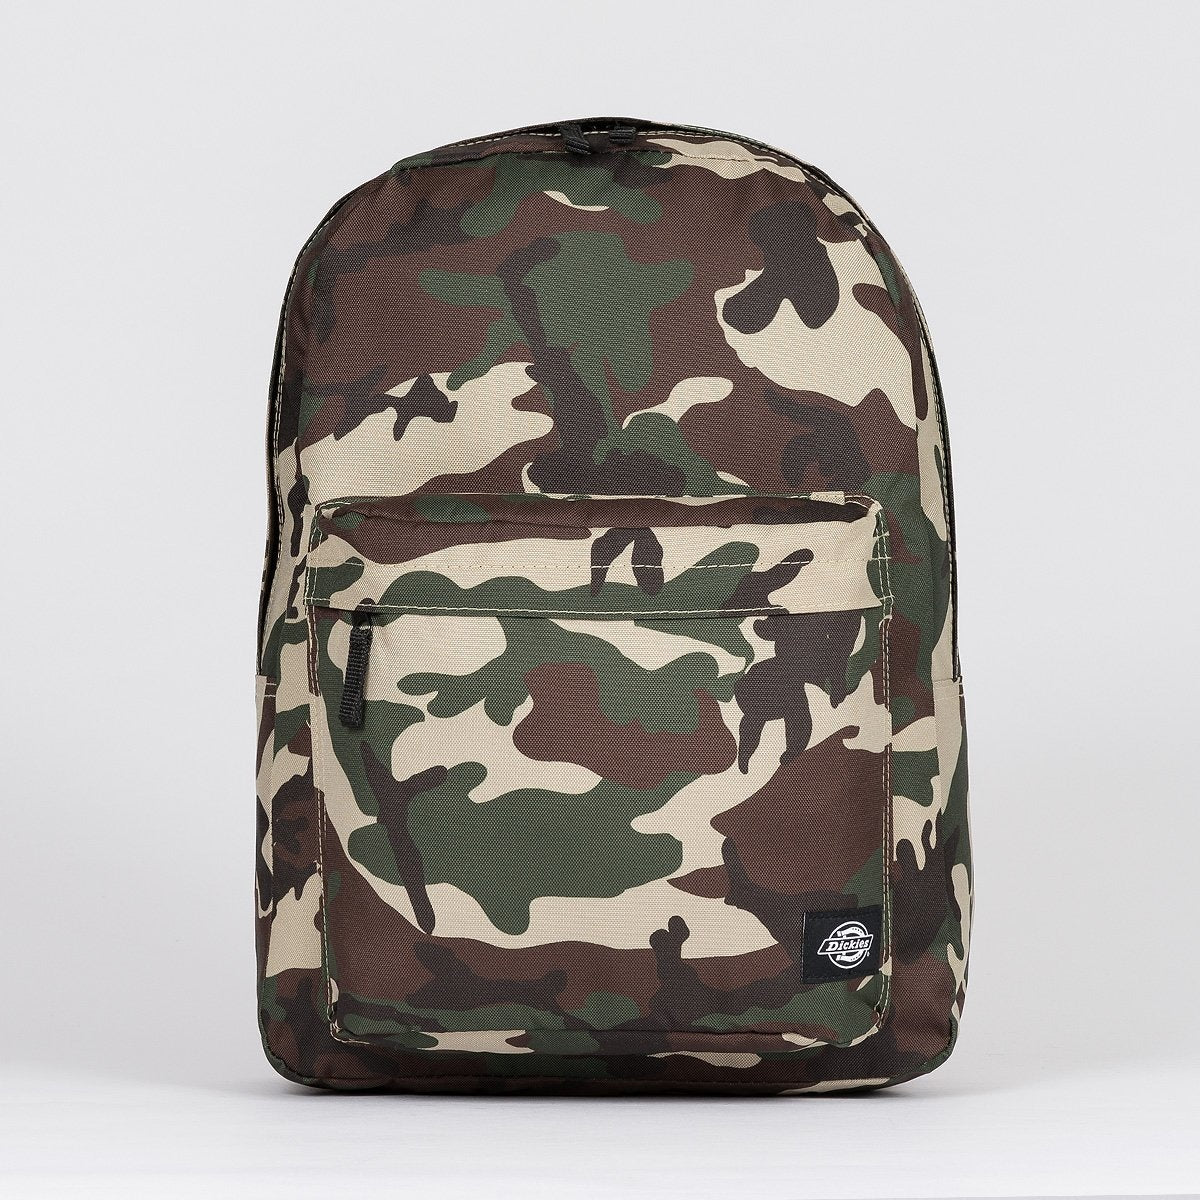 Dickies Indianapolis Backpack Camouflage - Accessories